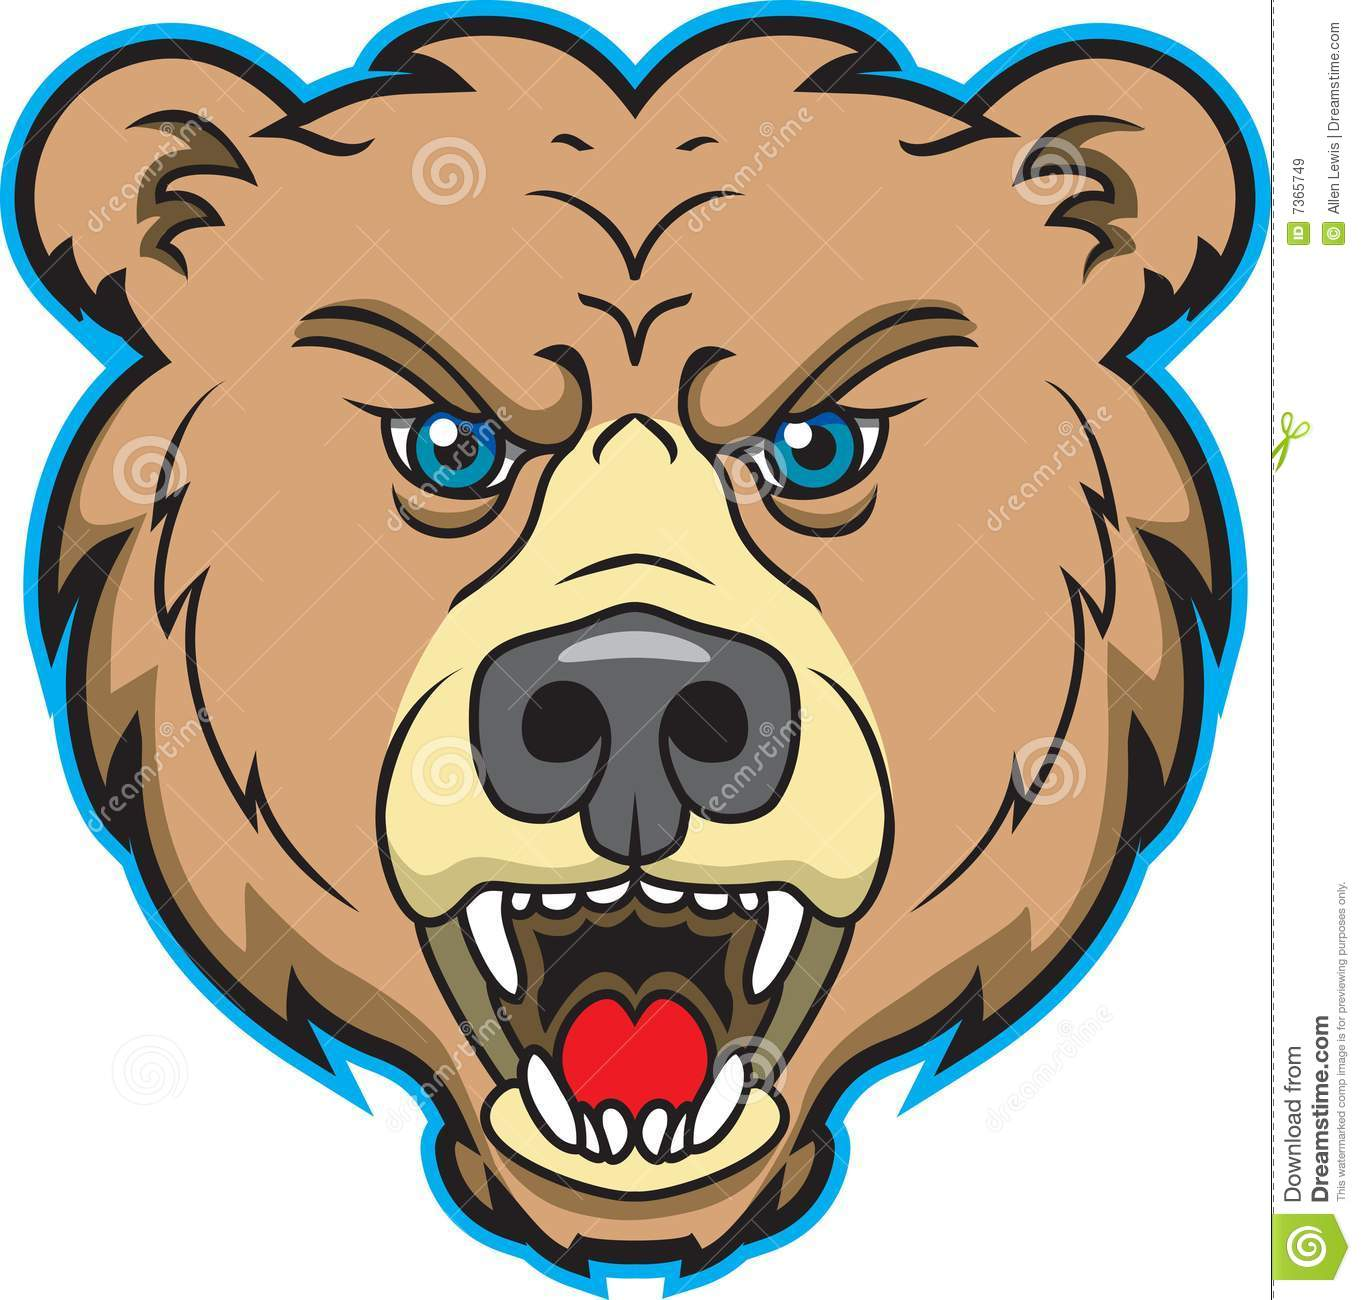 Bear Mascot Logo stock vector. Illustration of growl, animal.